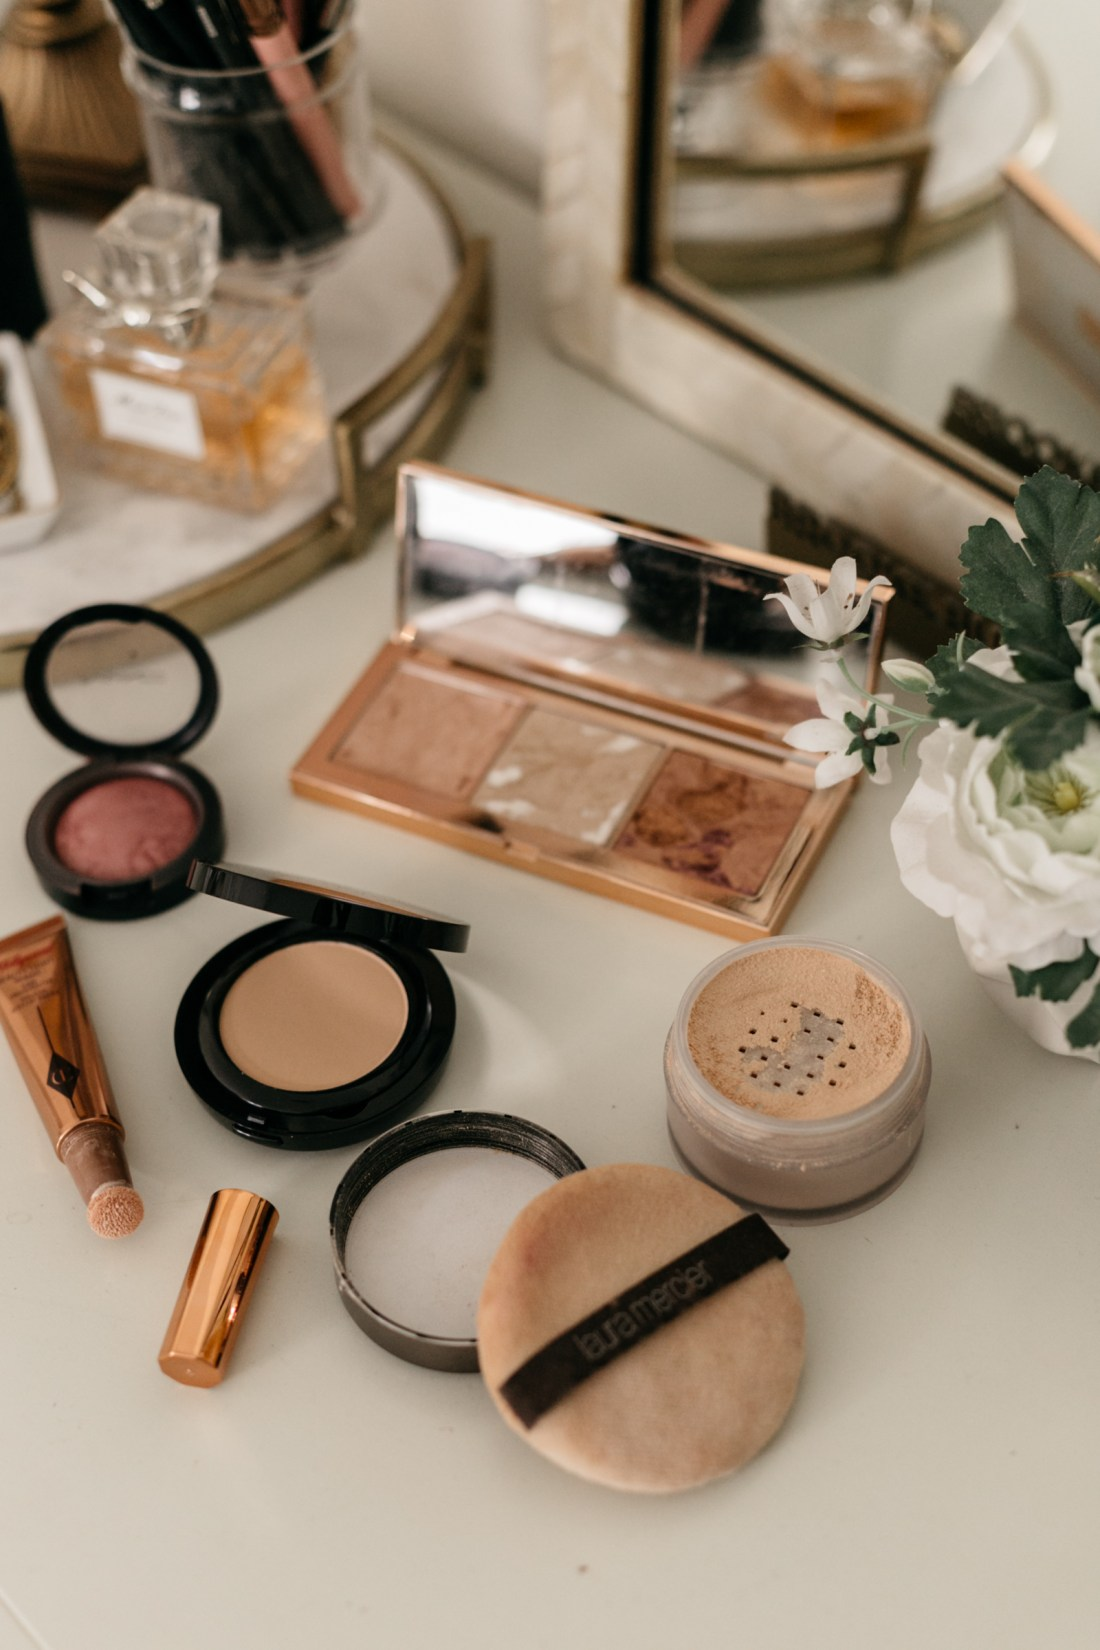 Daily Makeup Routine - Makeup for Oily Skin by Brooke Burnett